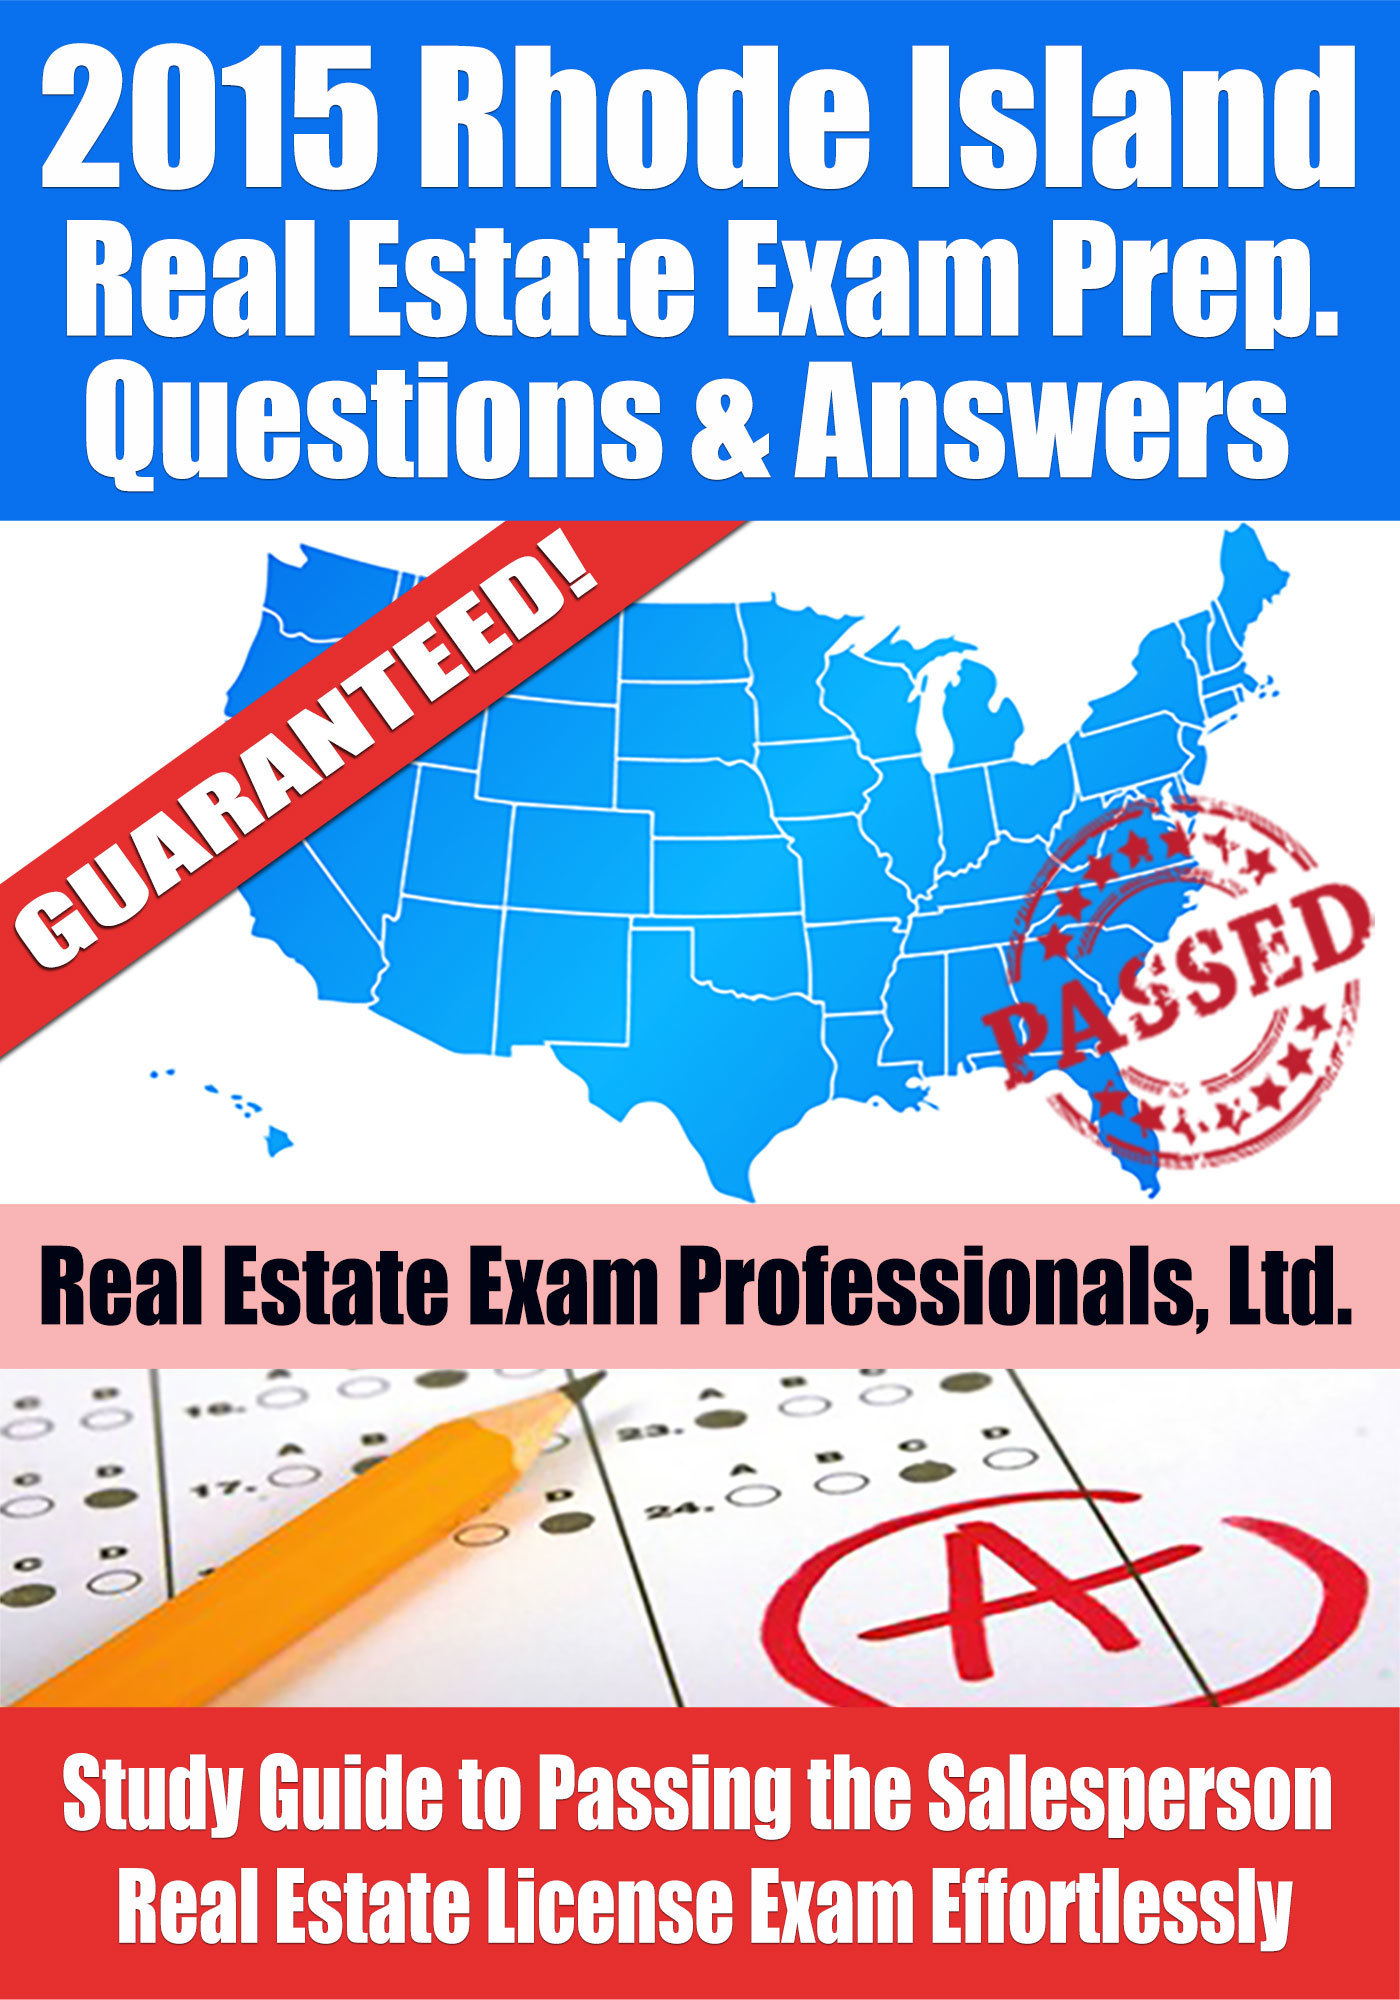 2015 Rhode Island Real Estate Exam Prep Questions and Answers: Study Guide to Passing the Salesperson Real Estate License Exam Effortlessly Real Estate Exam Professionals Ltd.